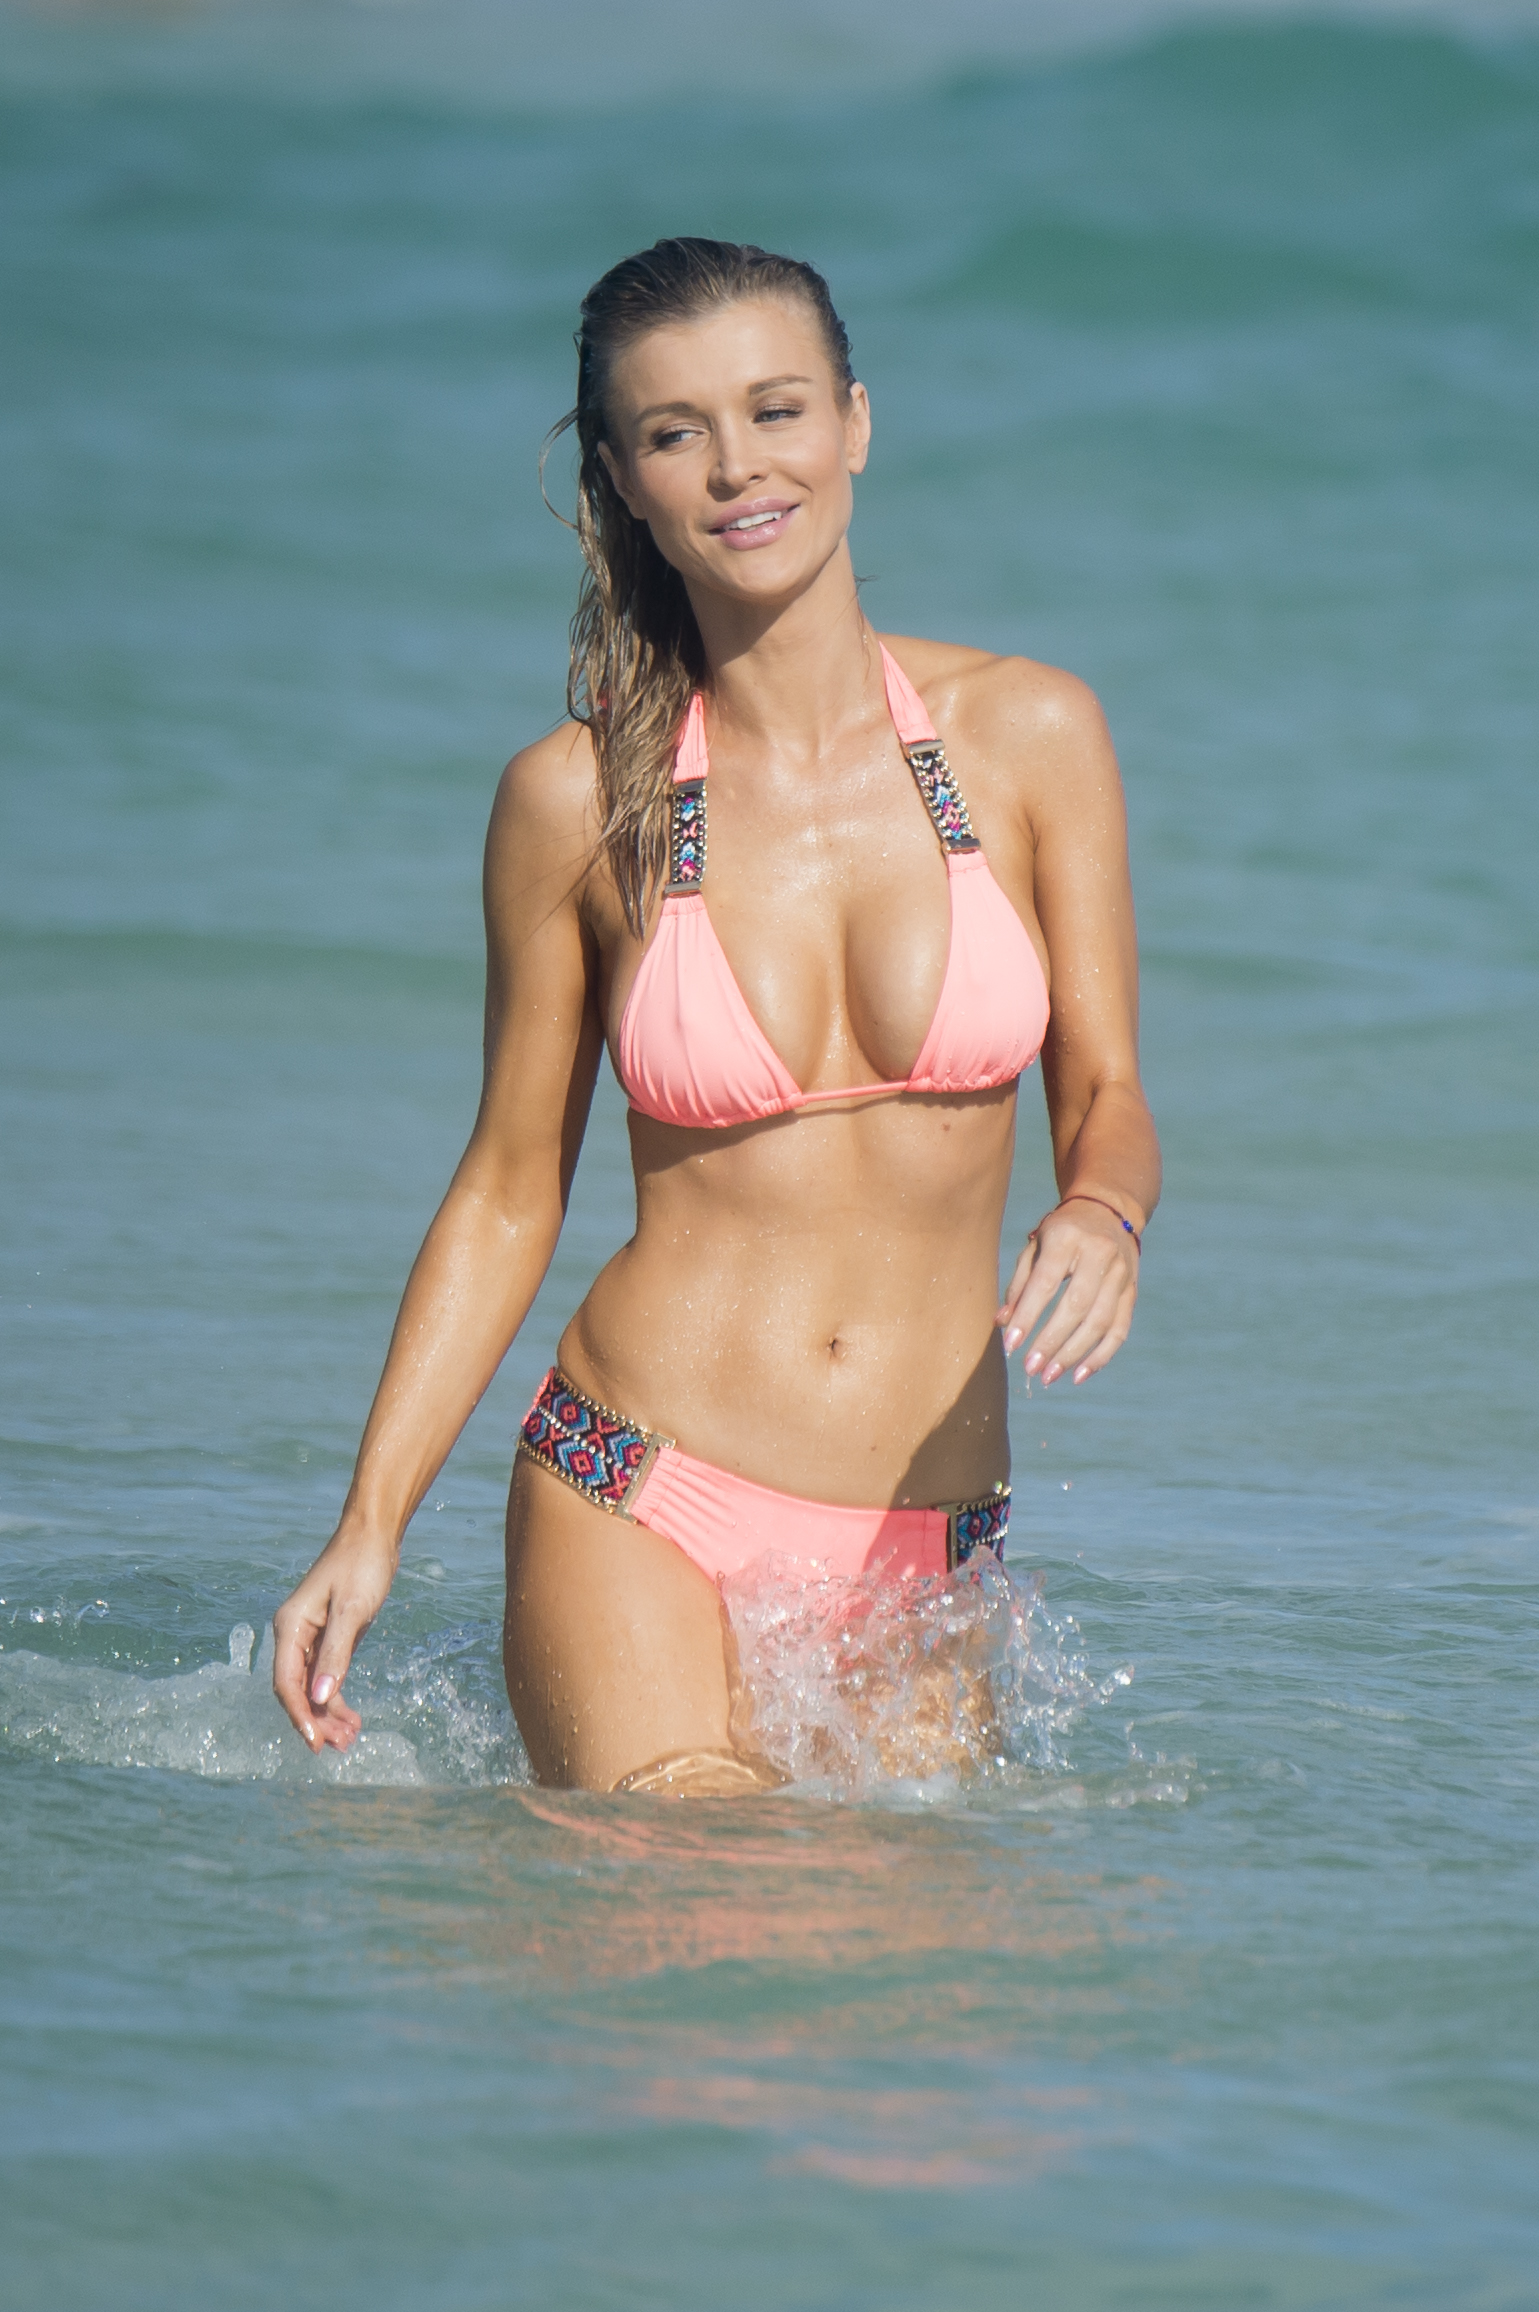 Supermodel Joanna Krupa made sure all eyes were on her as she showed off her perfect figure on Miami Beach (Photo credit: Splash News)